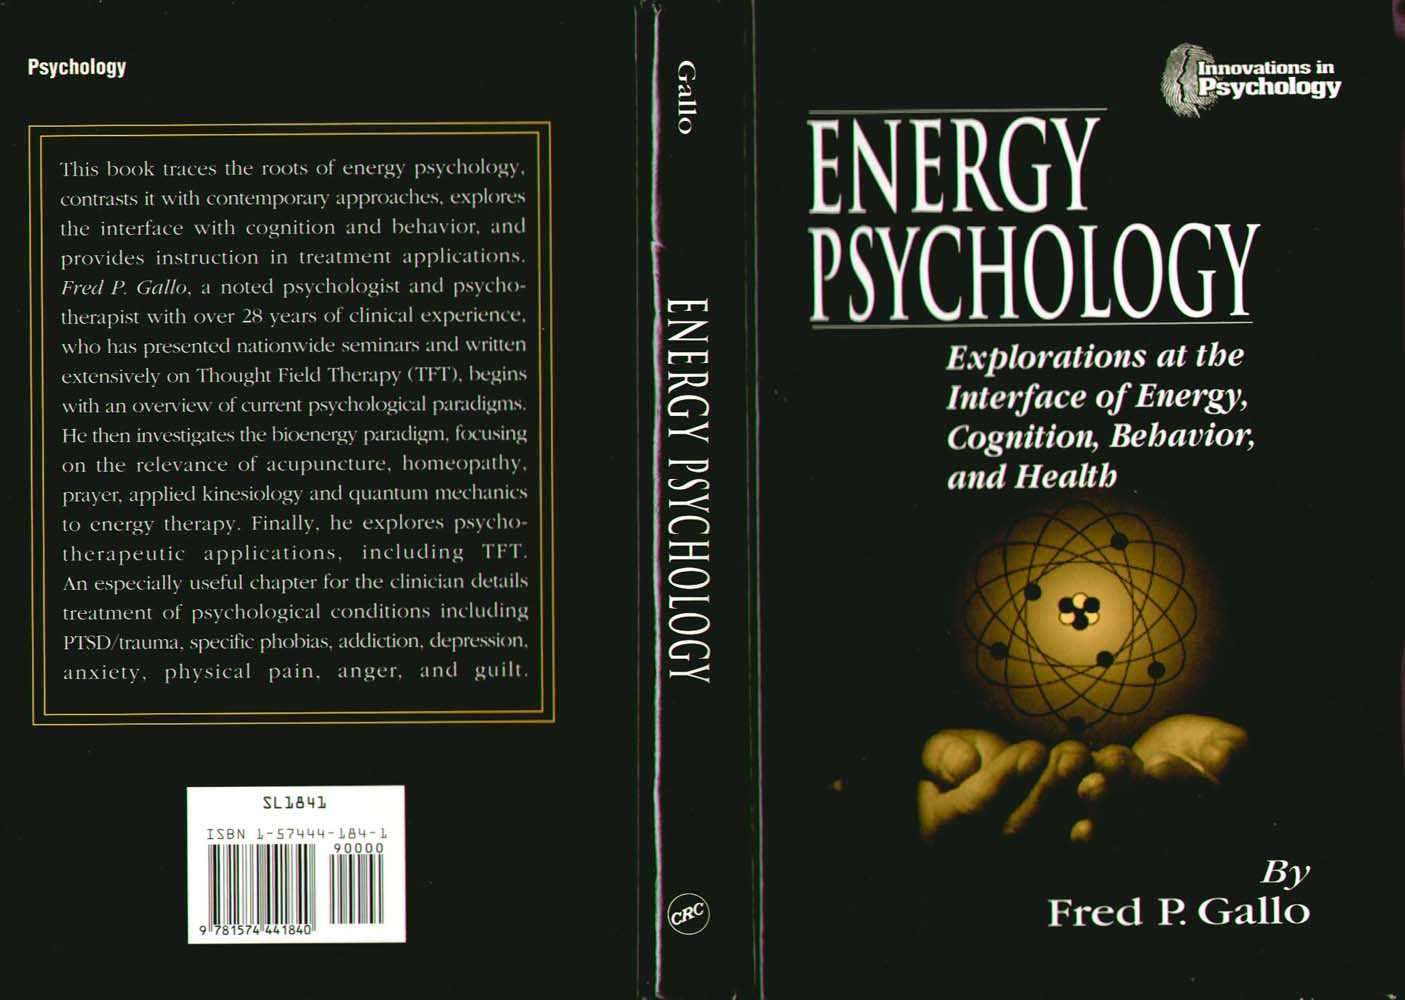 Energy Psychology : Explorations at the Interface of Energy, Cognition, Behavior, and Health, Gallo Fred P